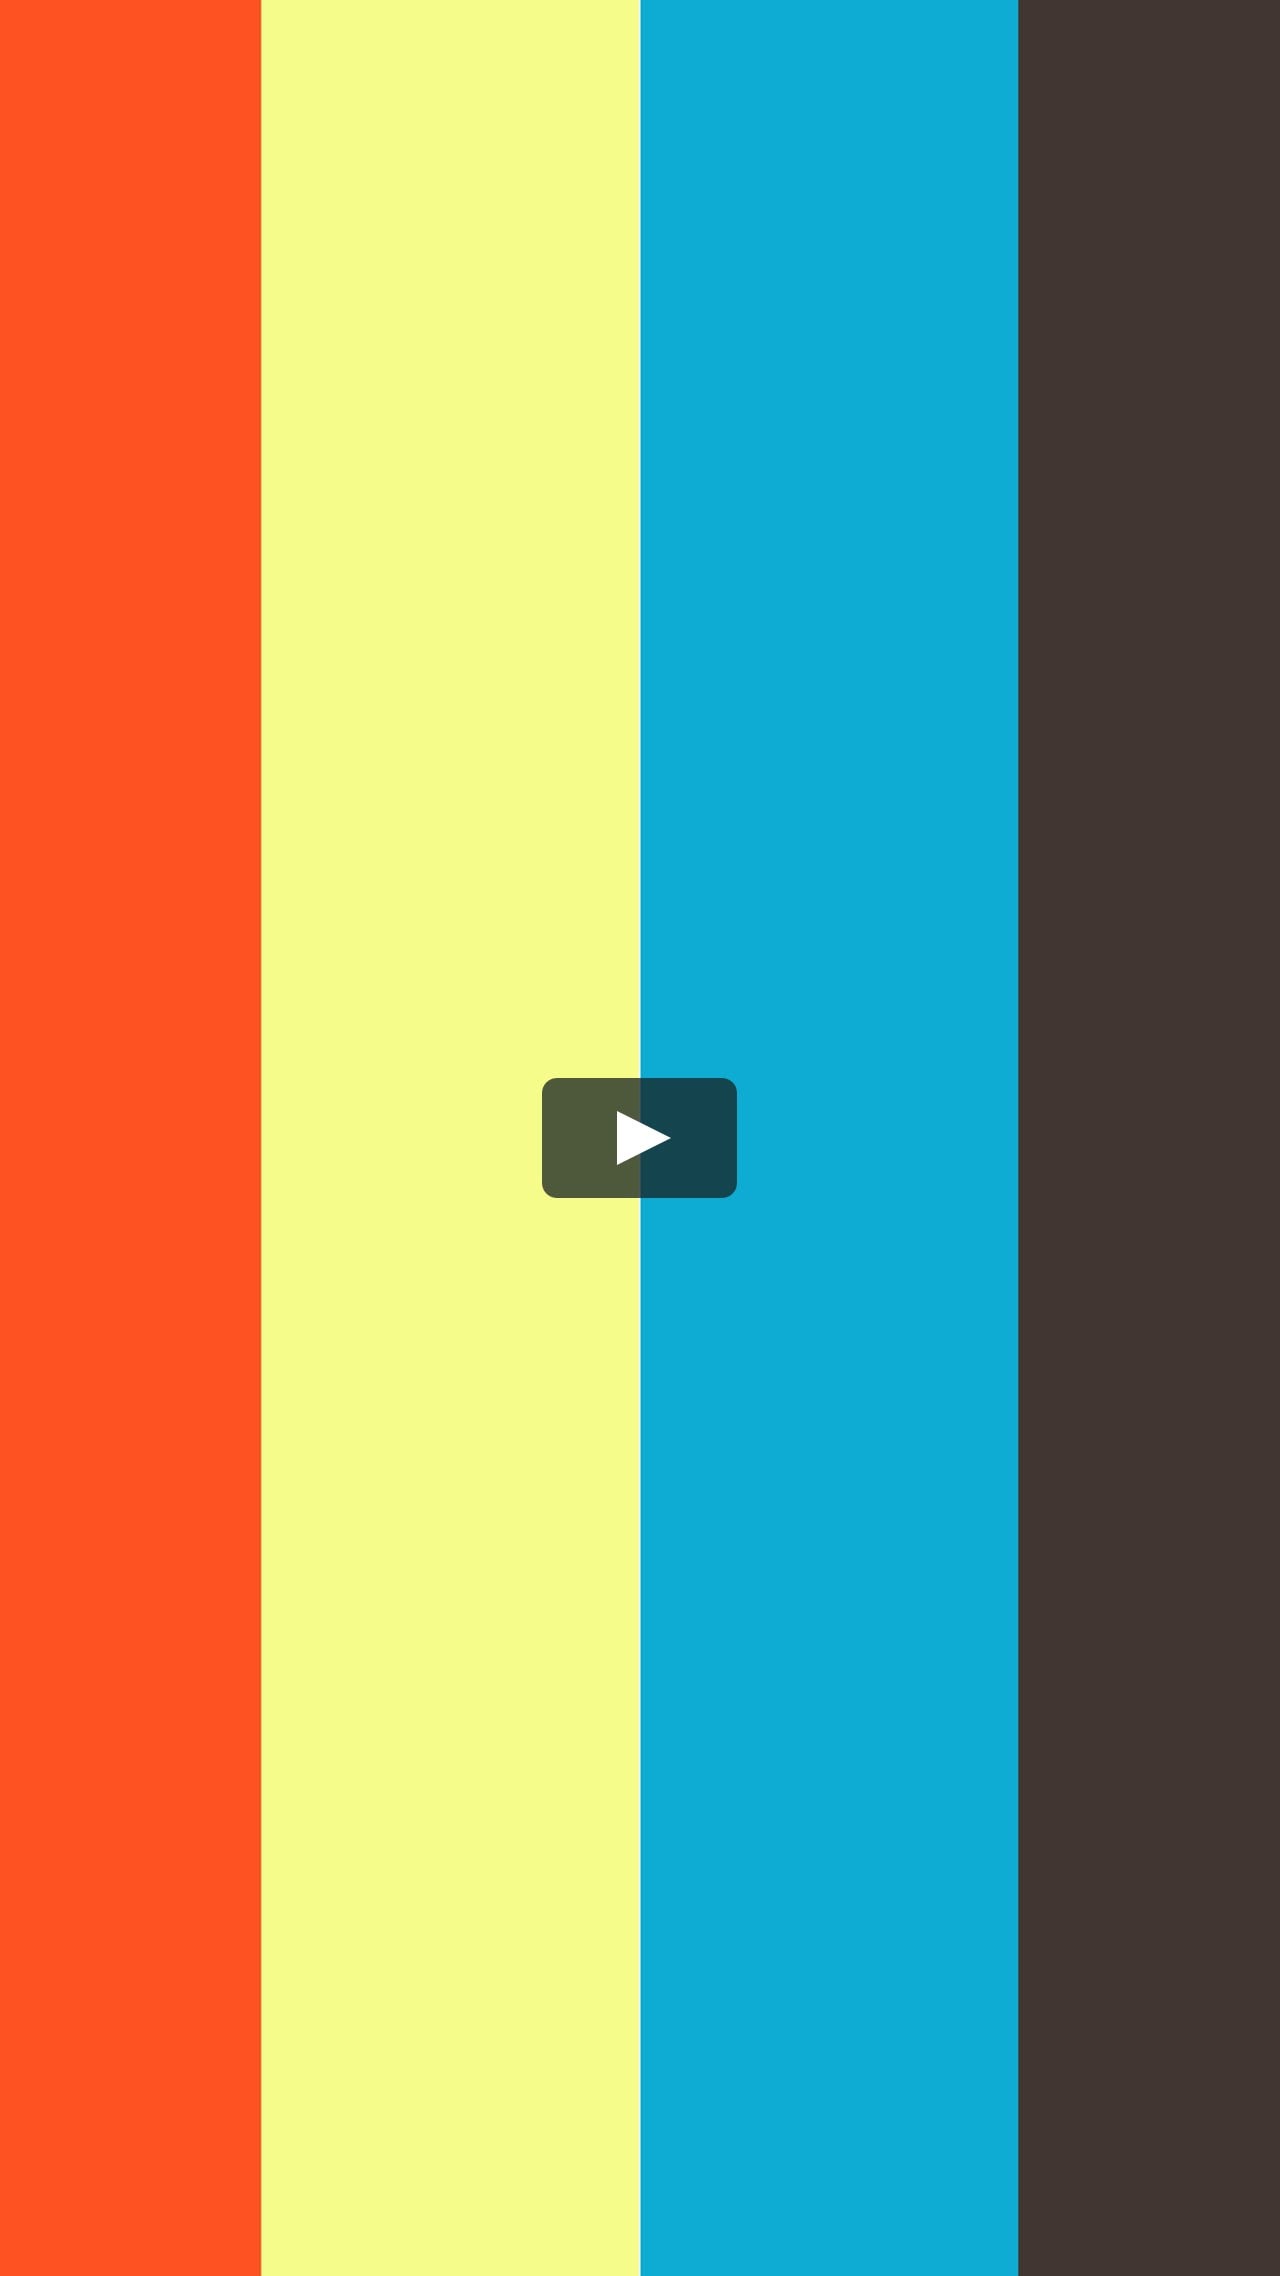 HSBC x Android Pay - Snapchat Ad